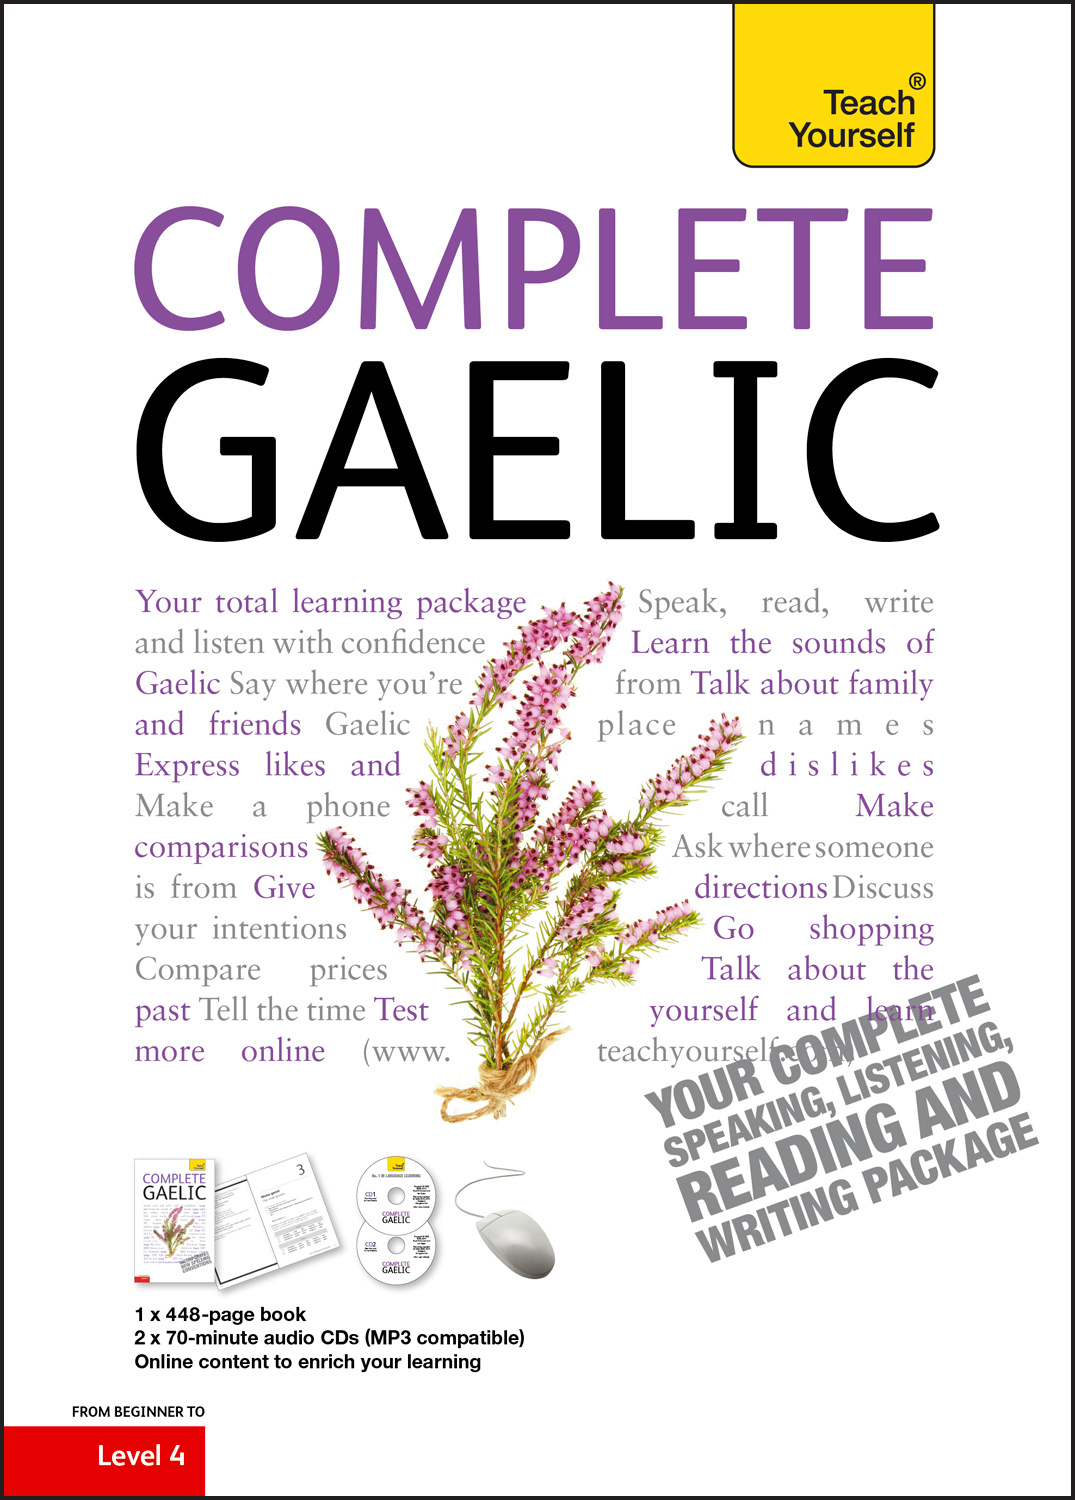 How to read and write gaelic - Download Image Download Image